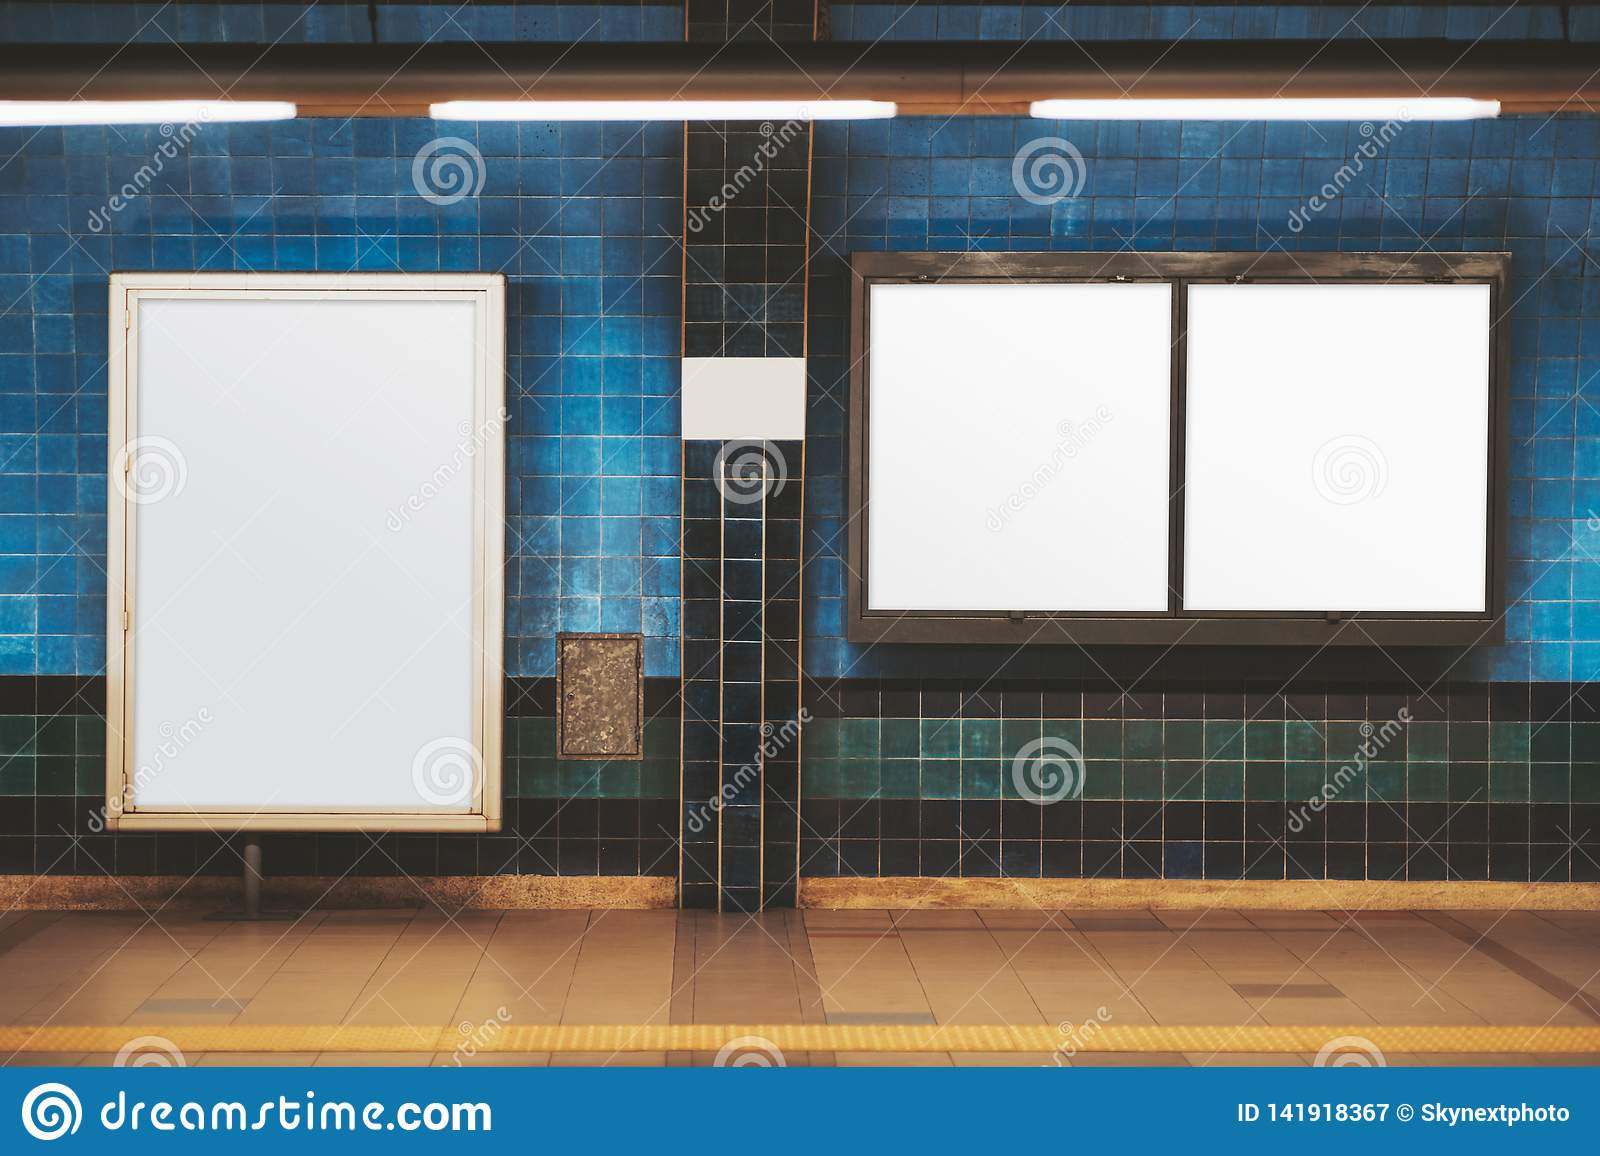 Blank Posters Mockup In A Subway Stock Image - Image of